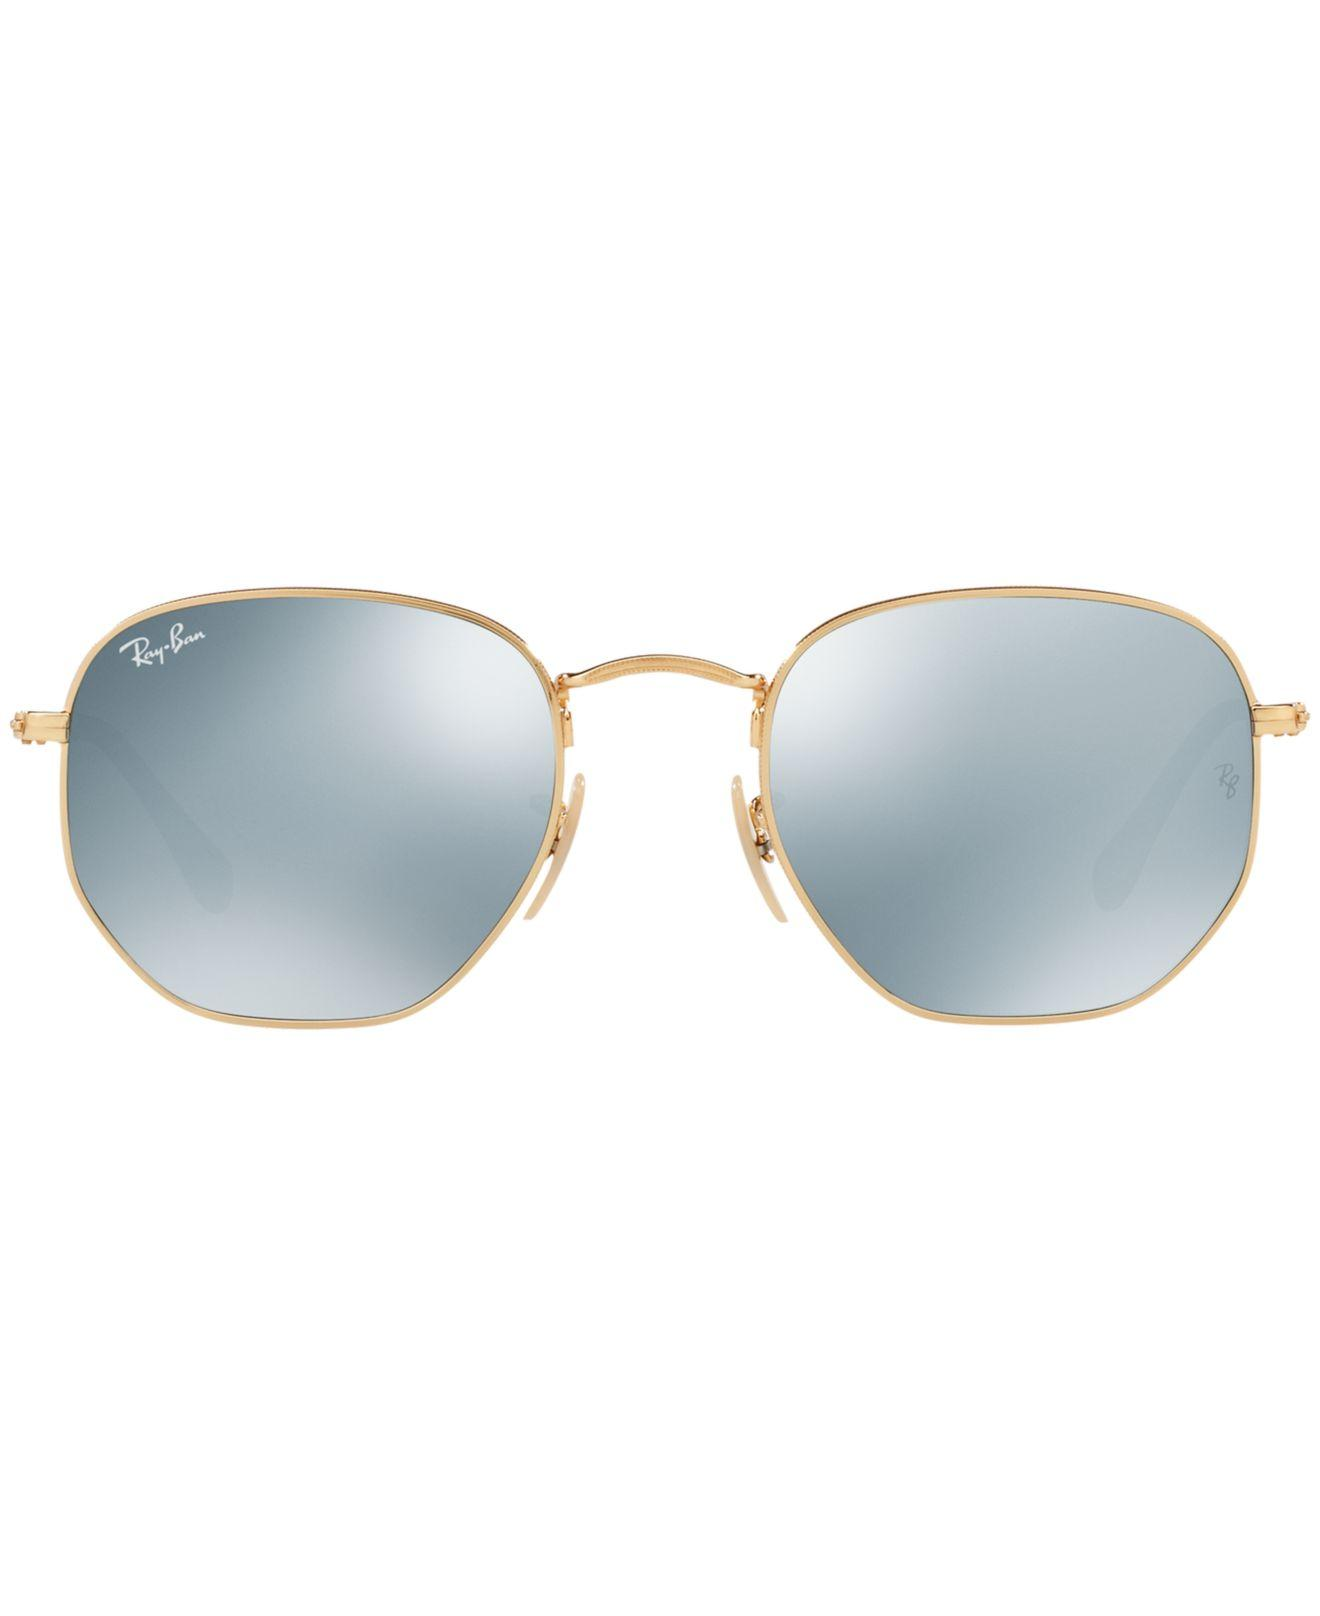 6f3d4bd796b Lyst - Ray-Ban Hexagonal Flat Lenses in Metallic for Men - Save 2%